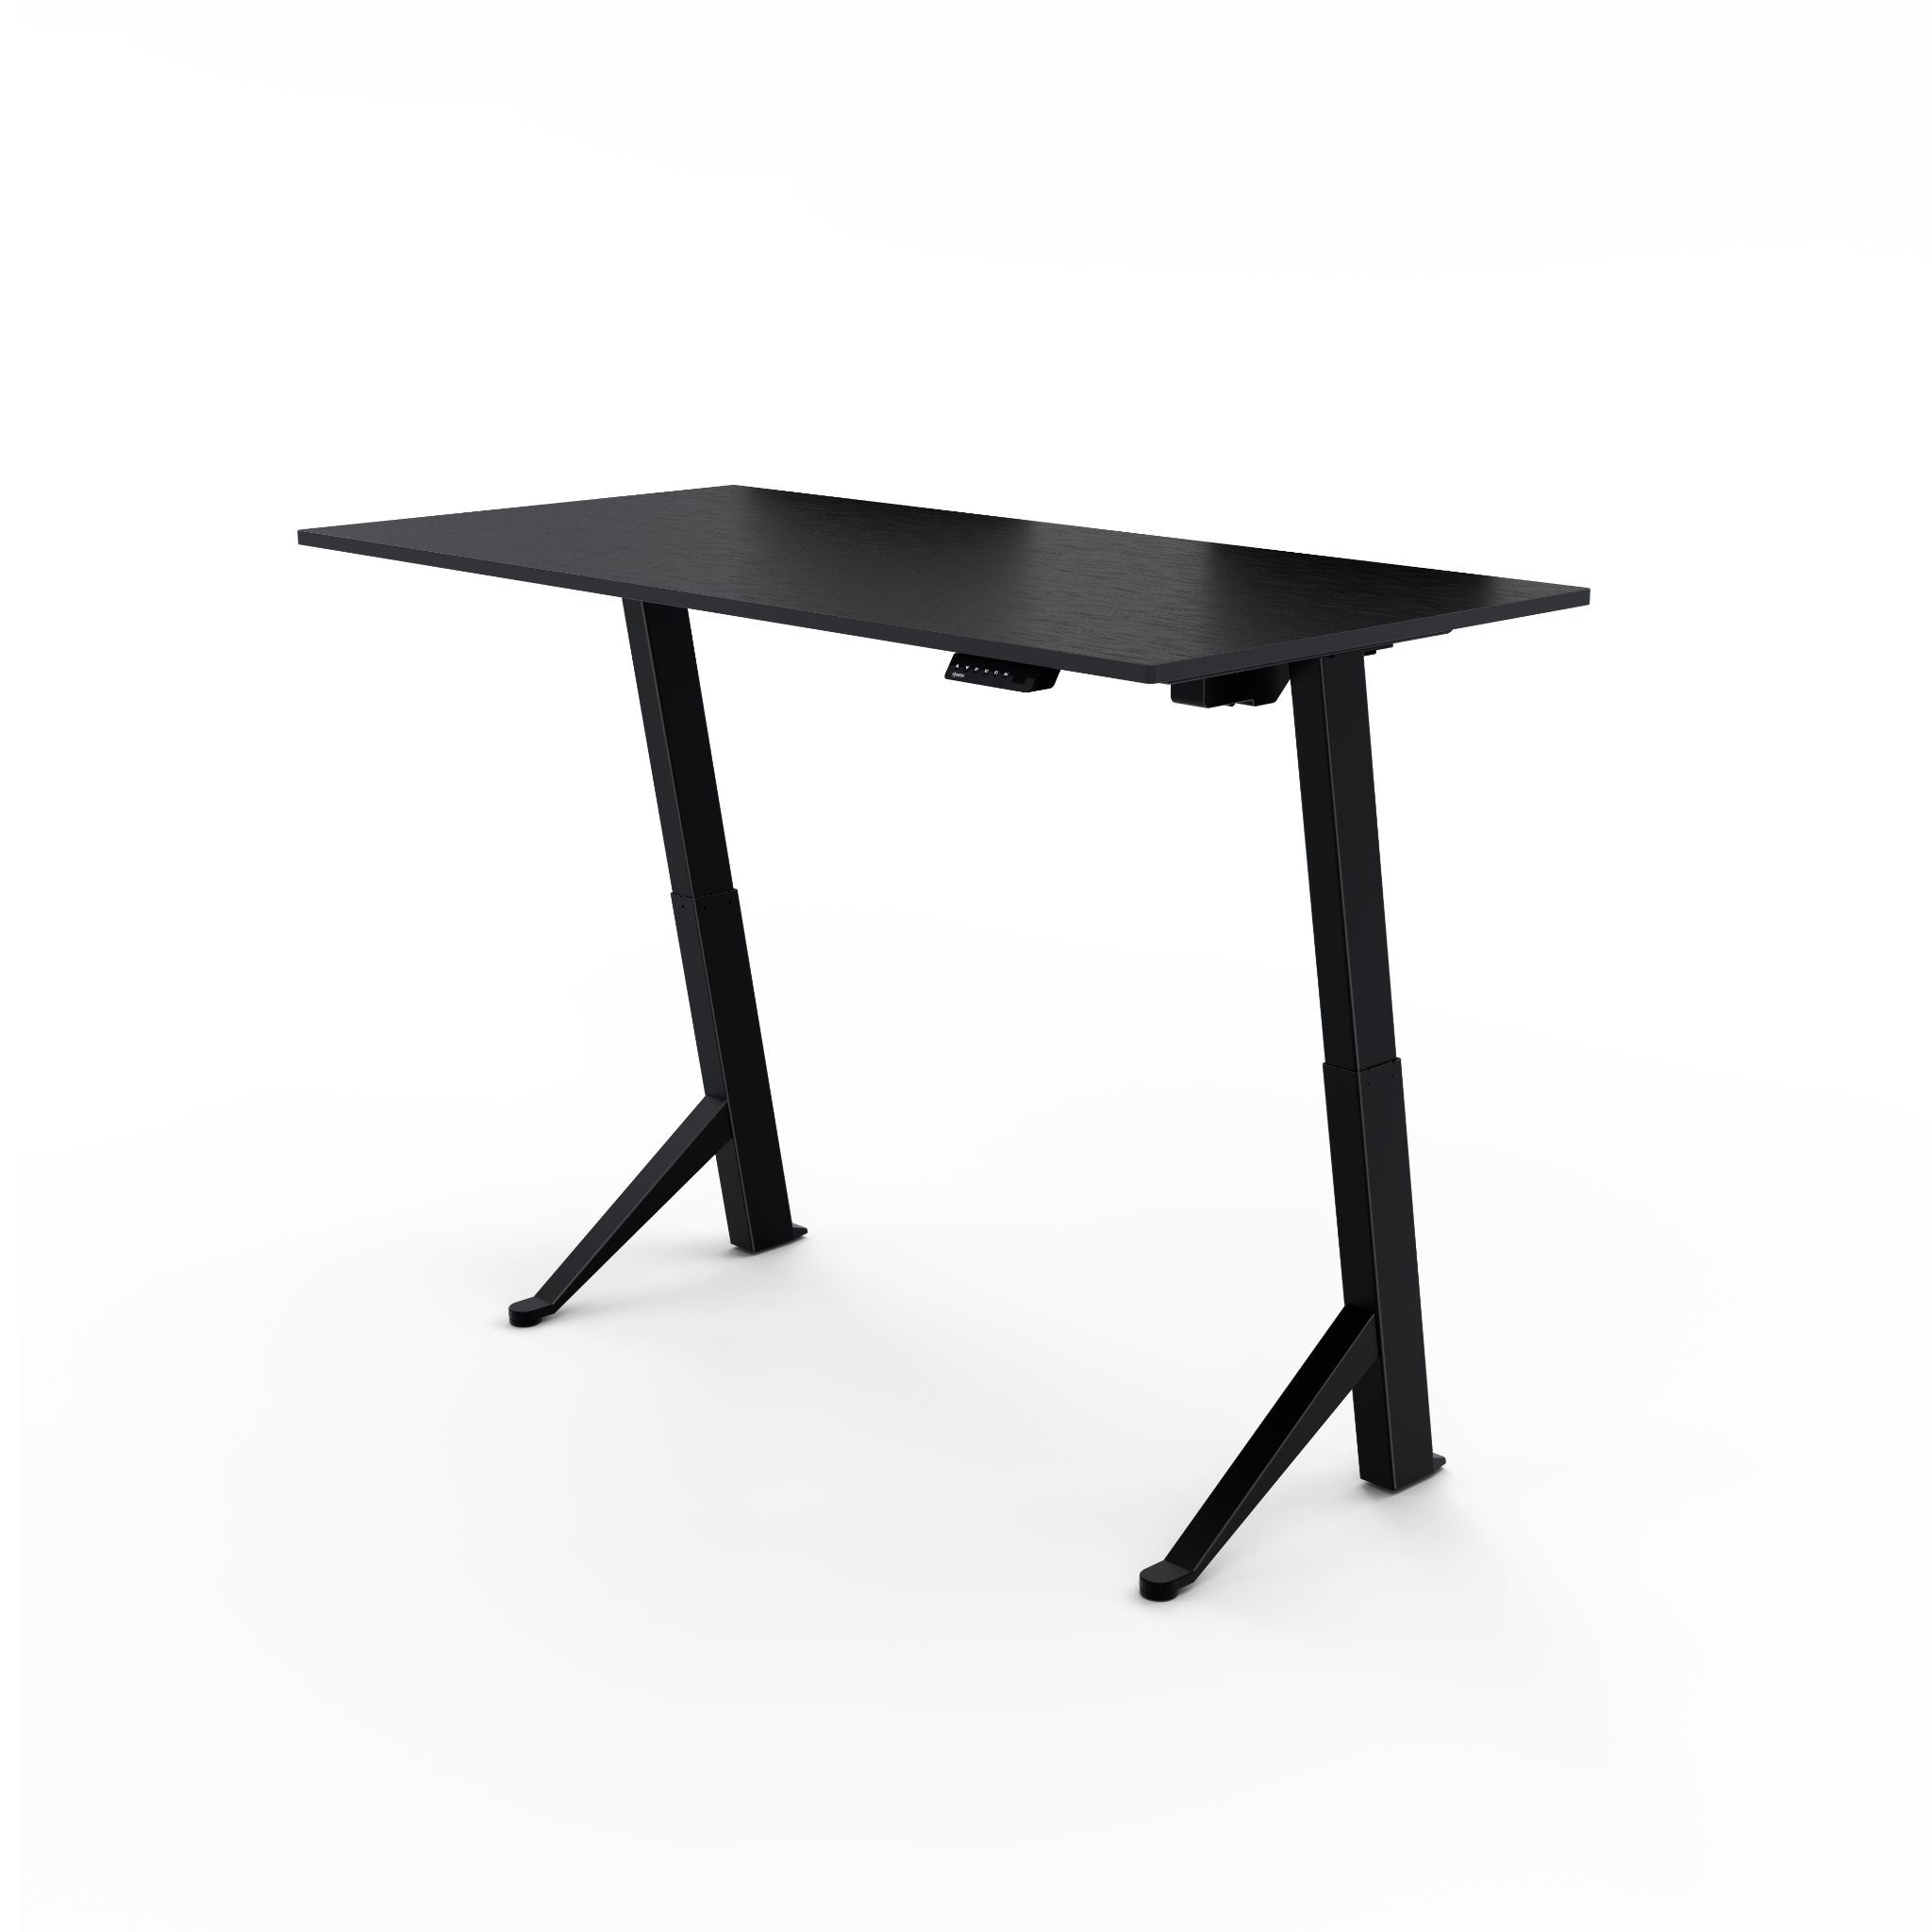 Updesk Home Electric Height Adjustable Standing Desk By Updesk